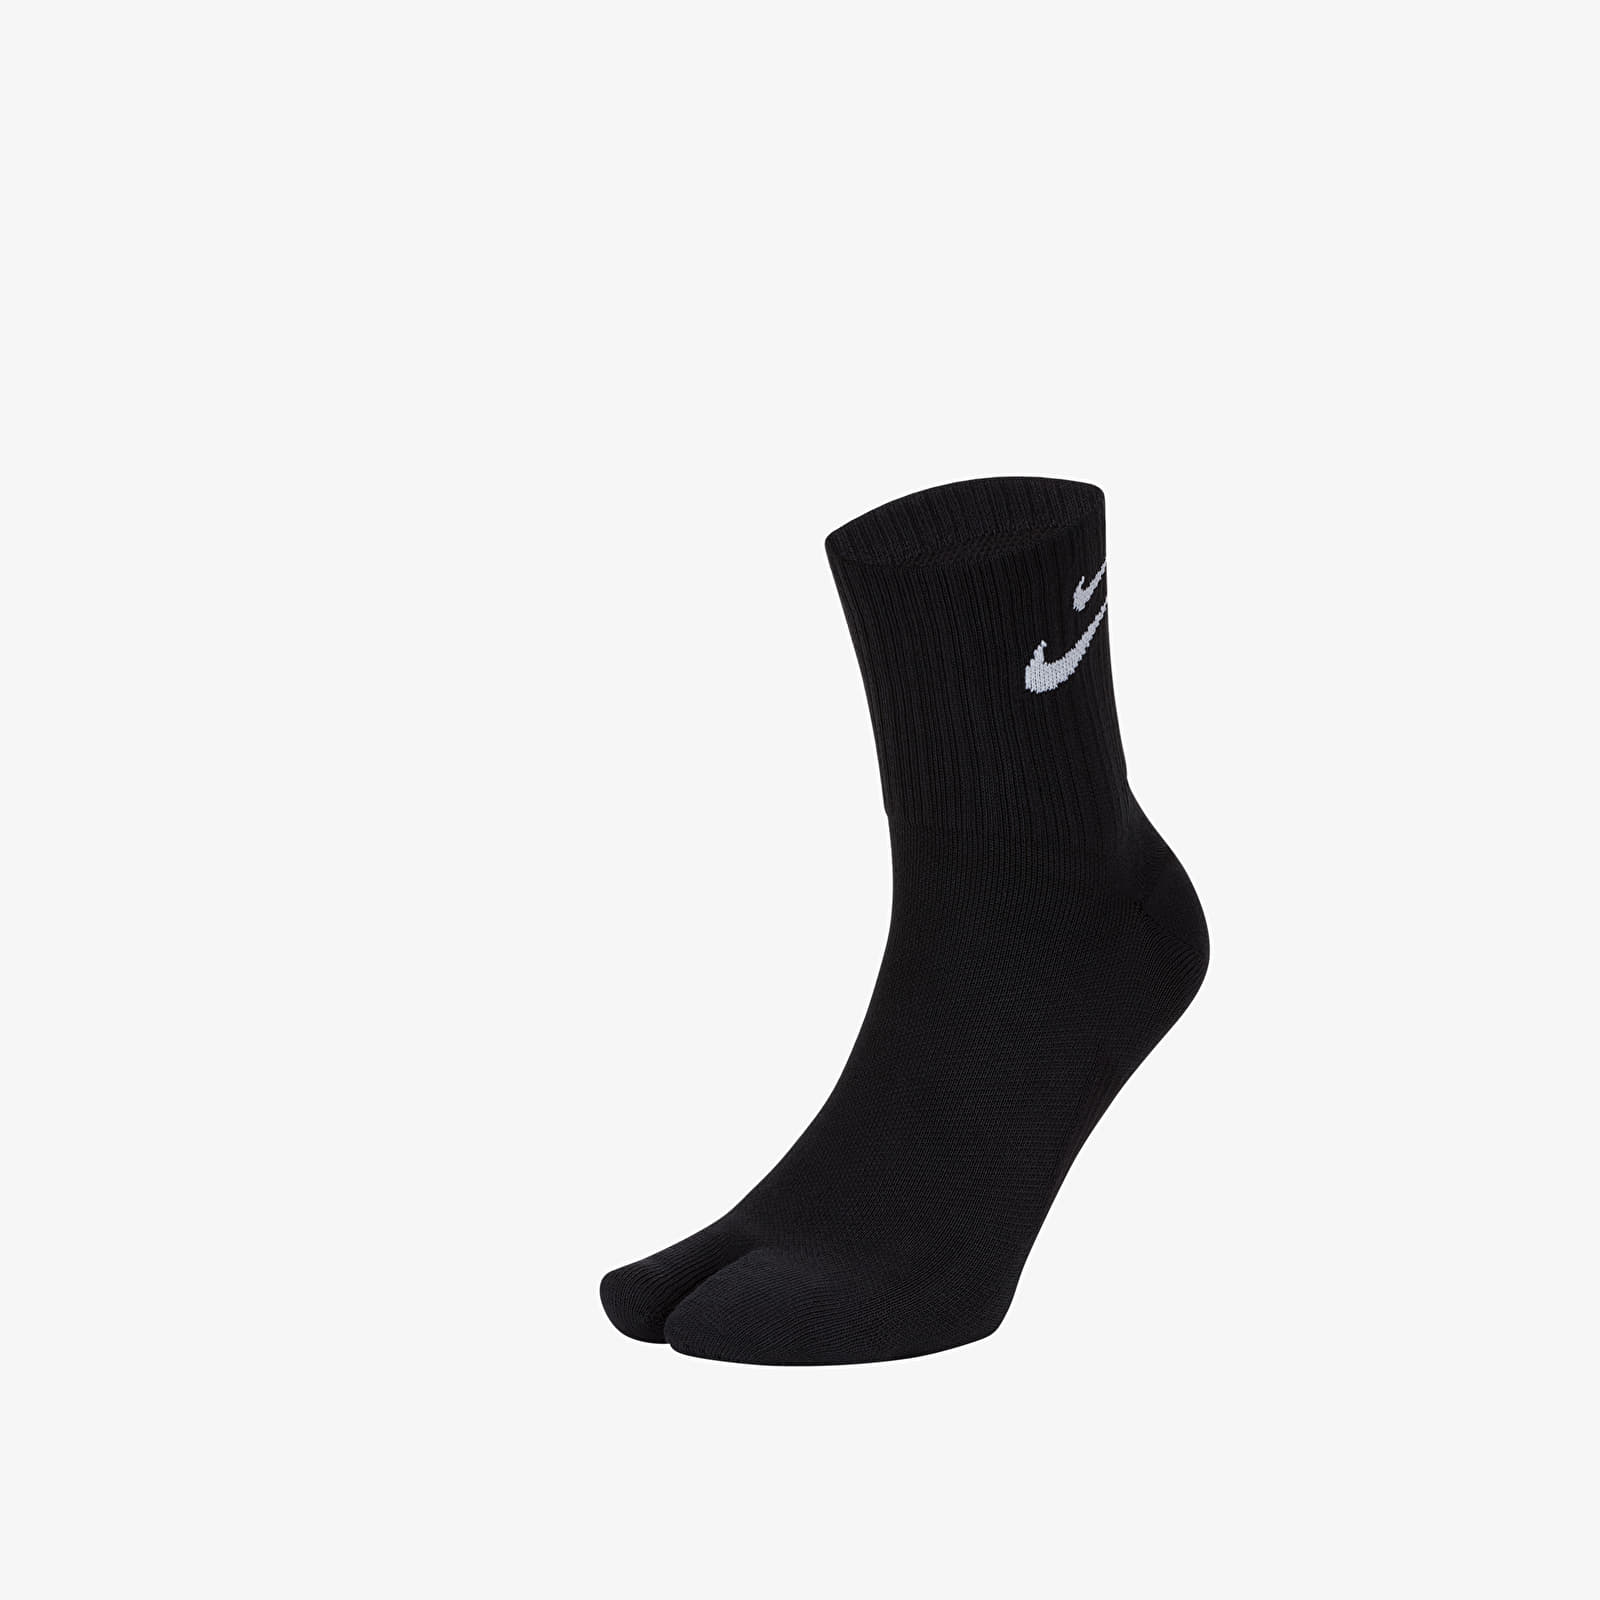 Calcetines Nike Tabi 2 Pair Wildcard Ankle Socks Multi-Color